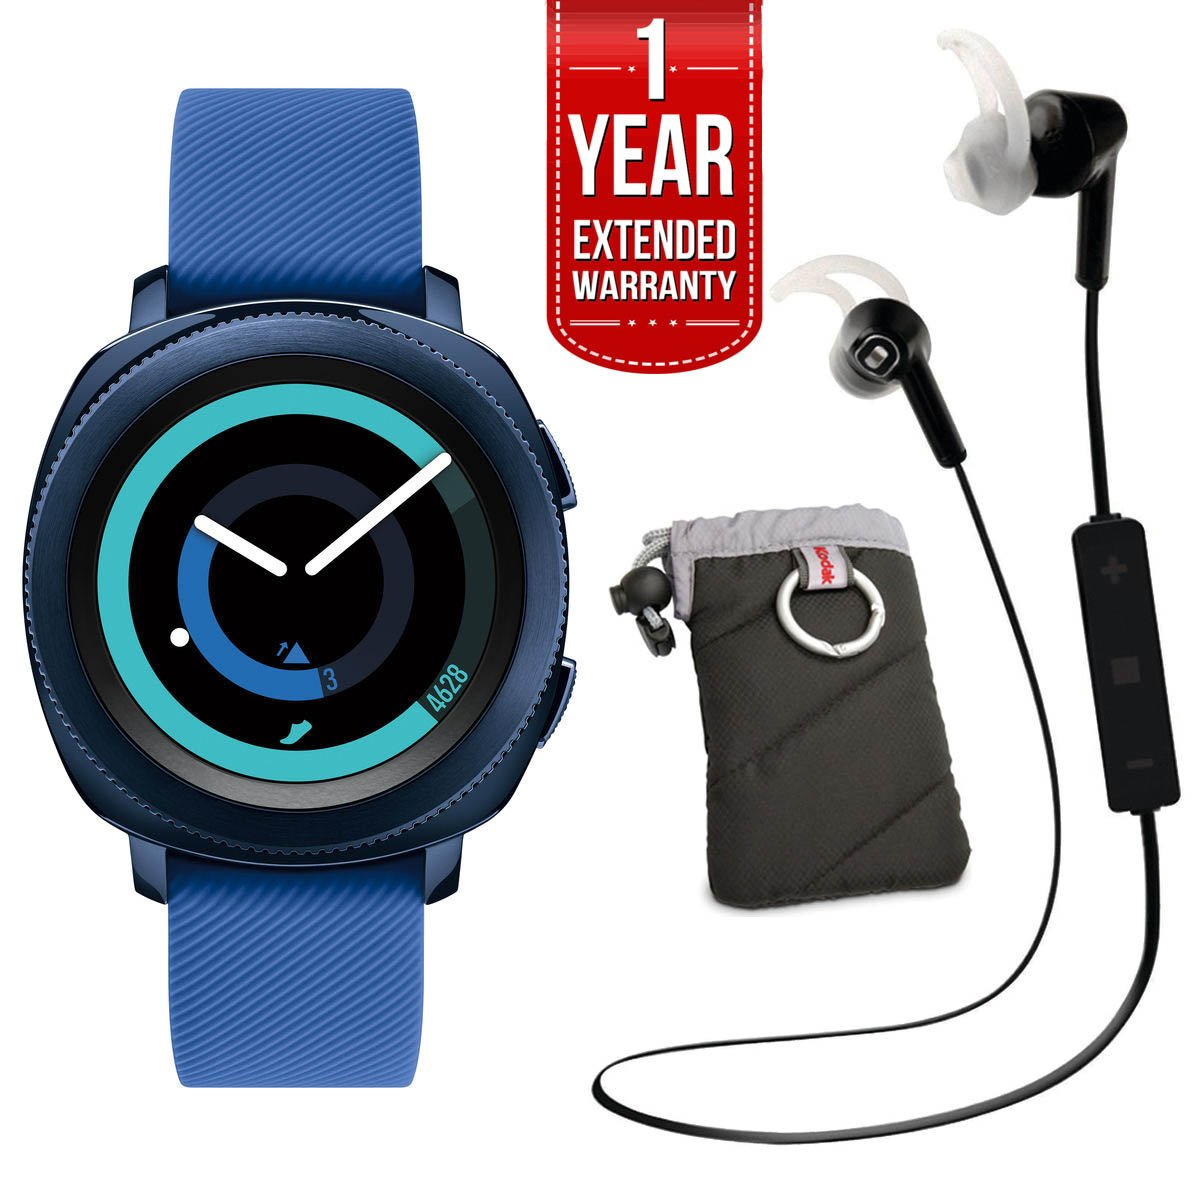 Samsung Gear Sport Activity Tracker (Blue) with Heart Rate Monitor, Kodak Case, Pro Bluetooth Earbuds, and 1 Year Extended Warranty Bundle